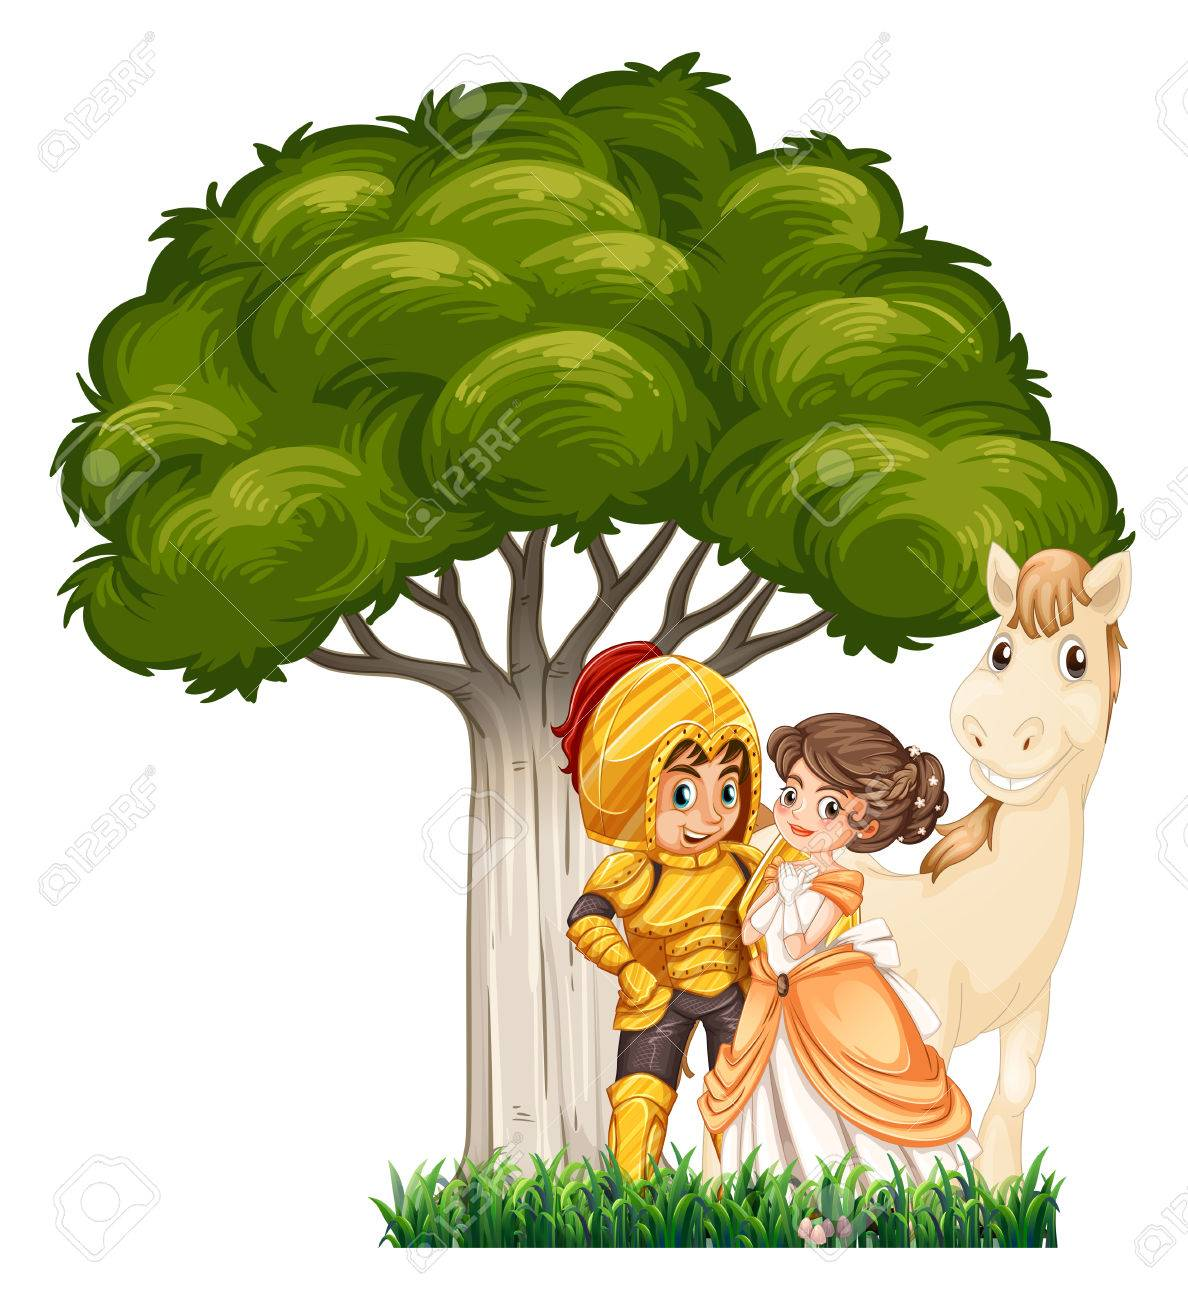 A soldier and his lover with a horse under the tree on a white background - 34280782